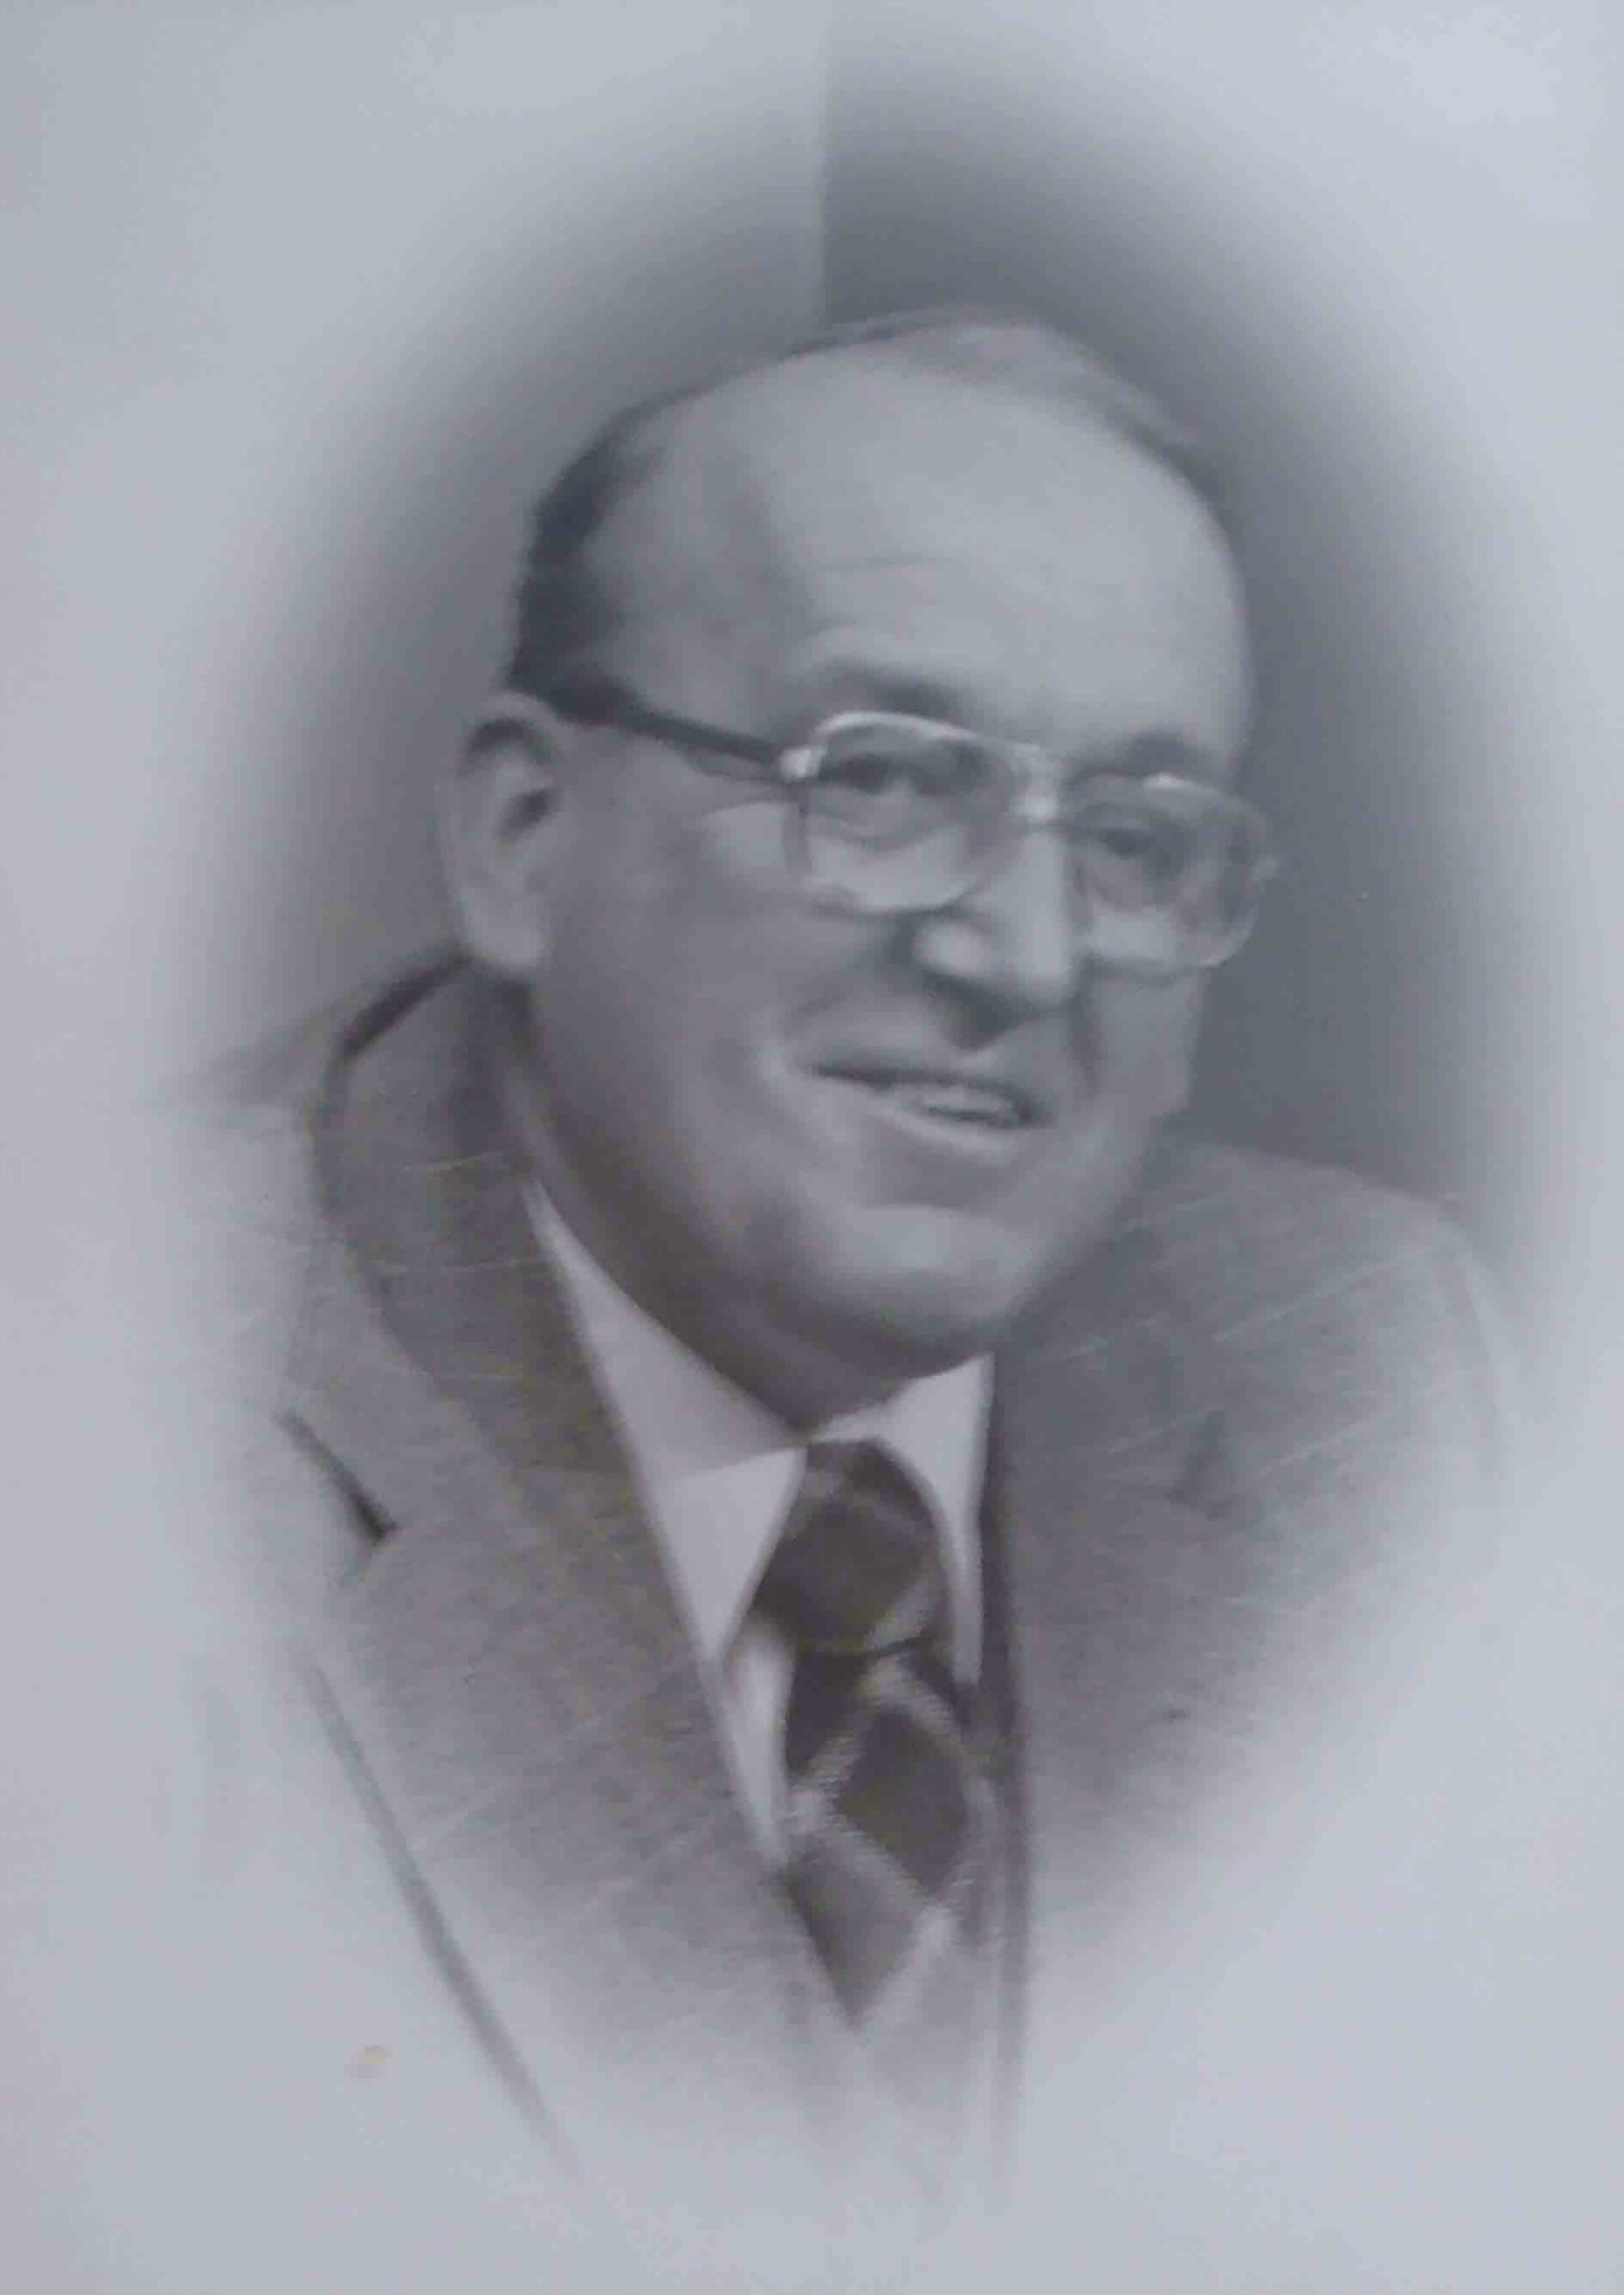 Ken Paskin, Mayor of Duncan 1974-1979. He was a member of Malahat Lodge, No. 107 in Mill Bay, B.C.